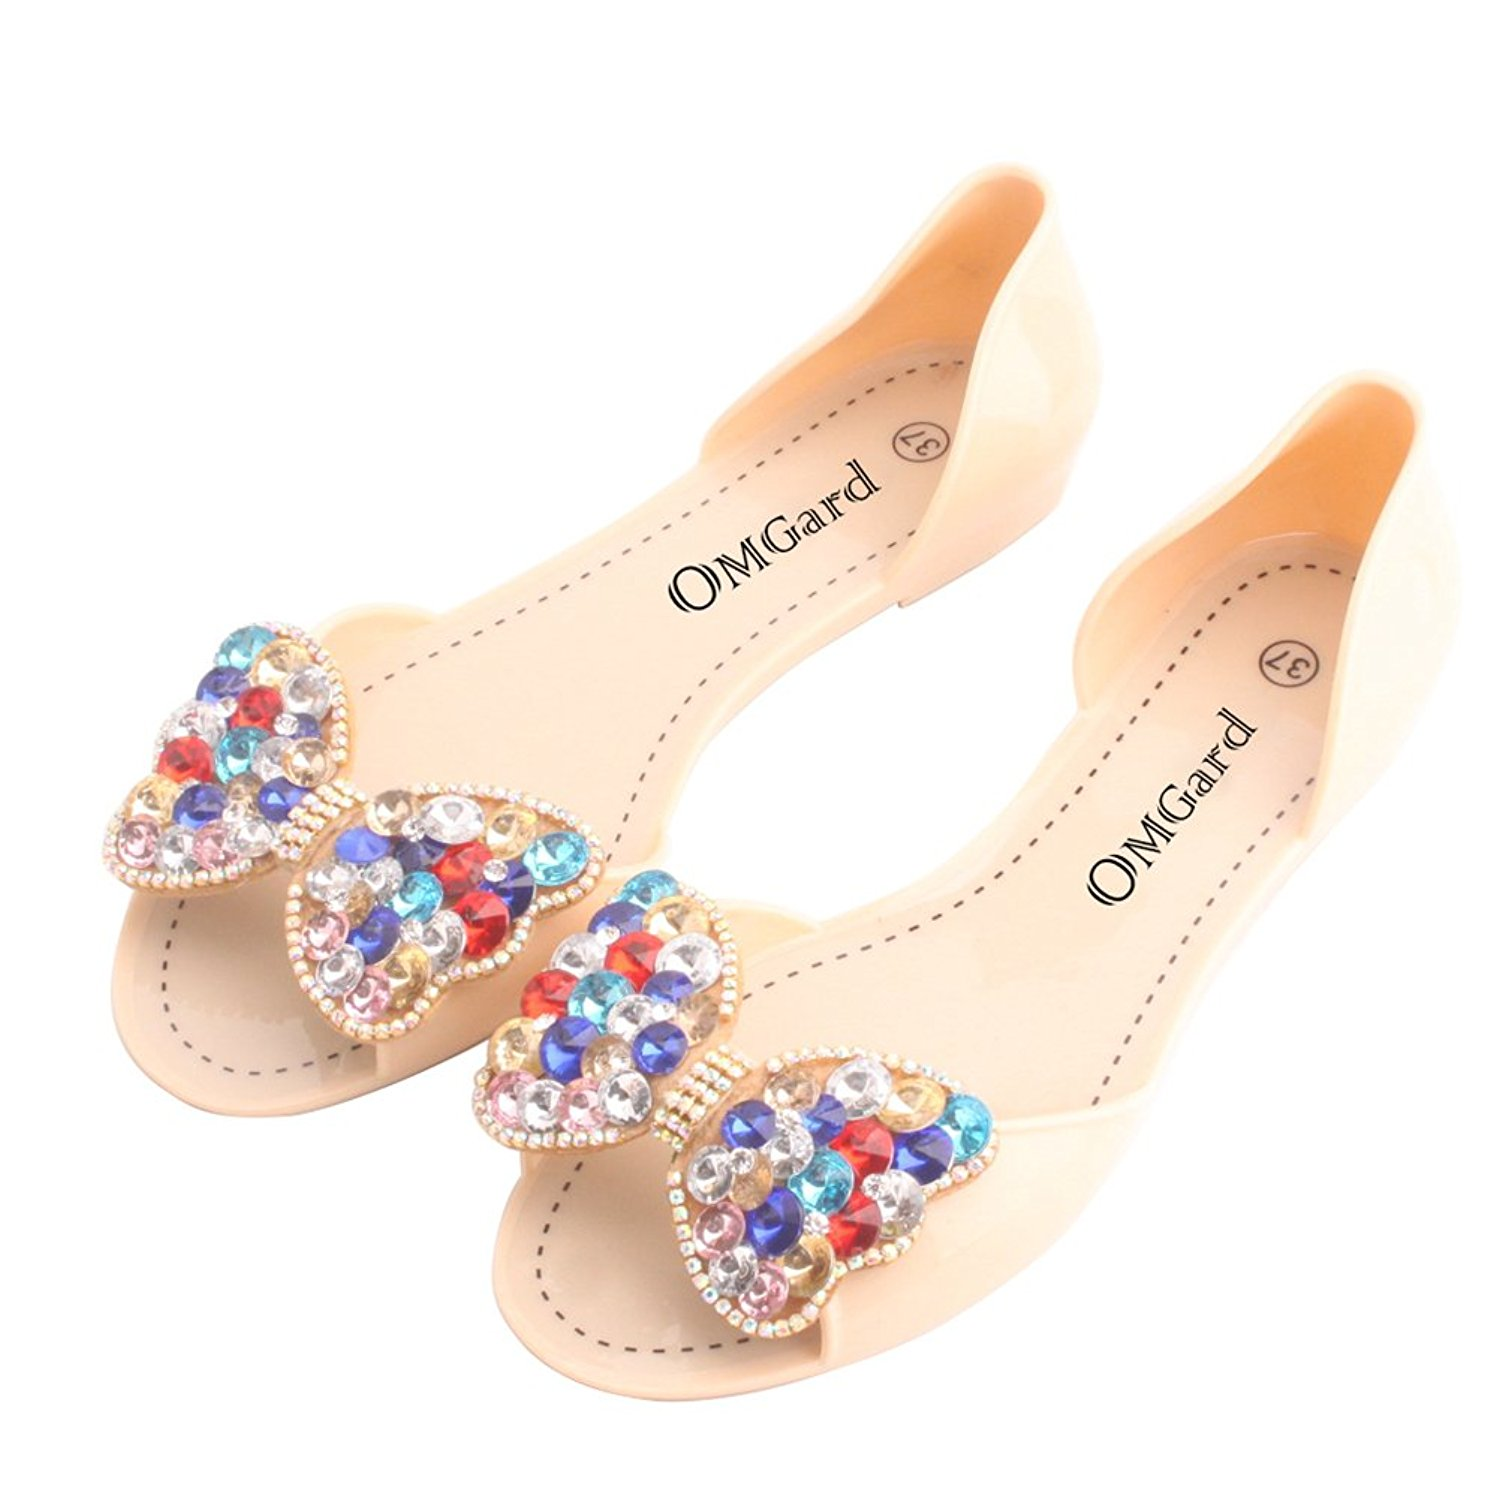 0e371b673 Get Quotations · Omgard Women Jelly Sandals Beach Jelly Shoes Summer Bow  Slippers Slip On Flats Shoes